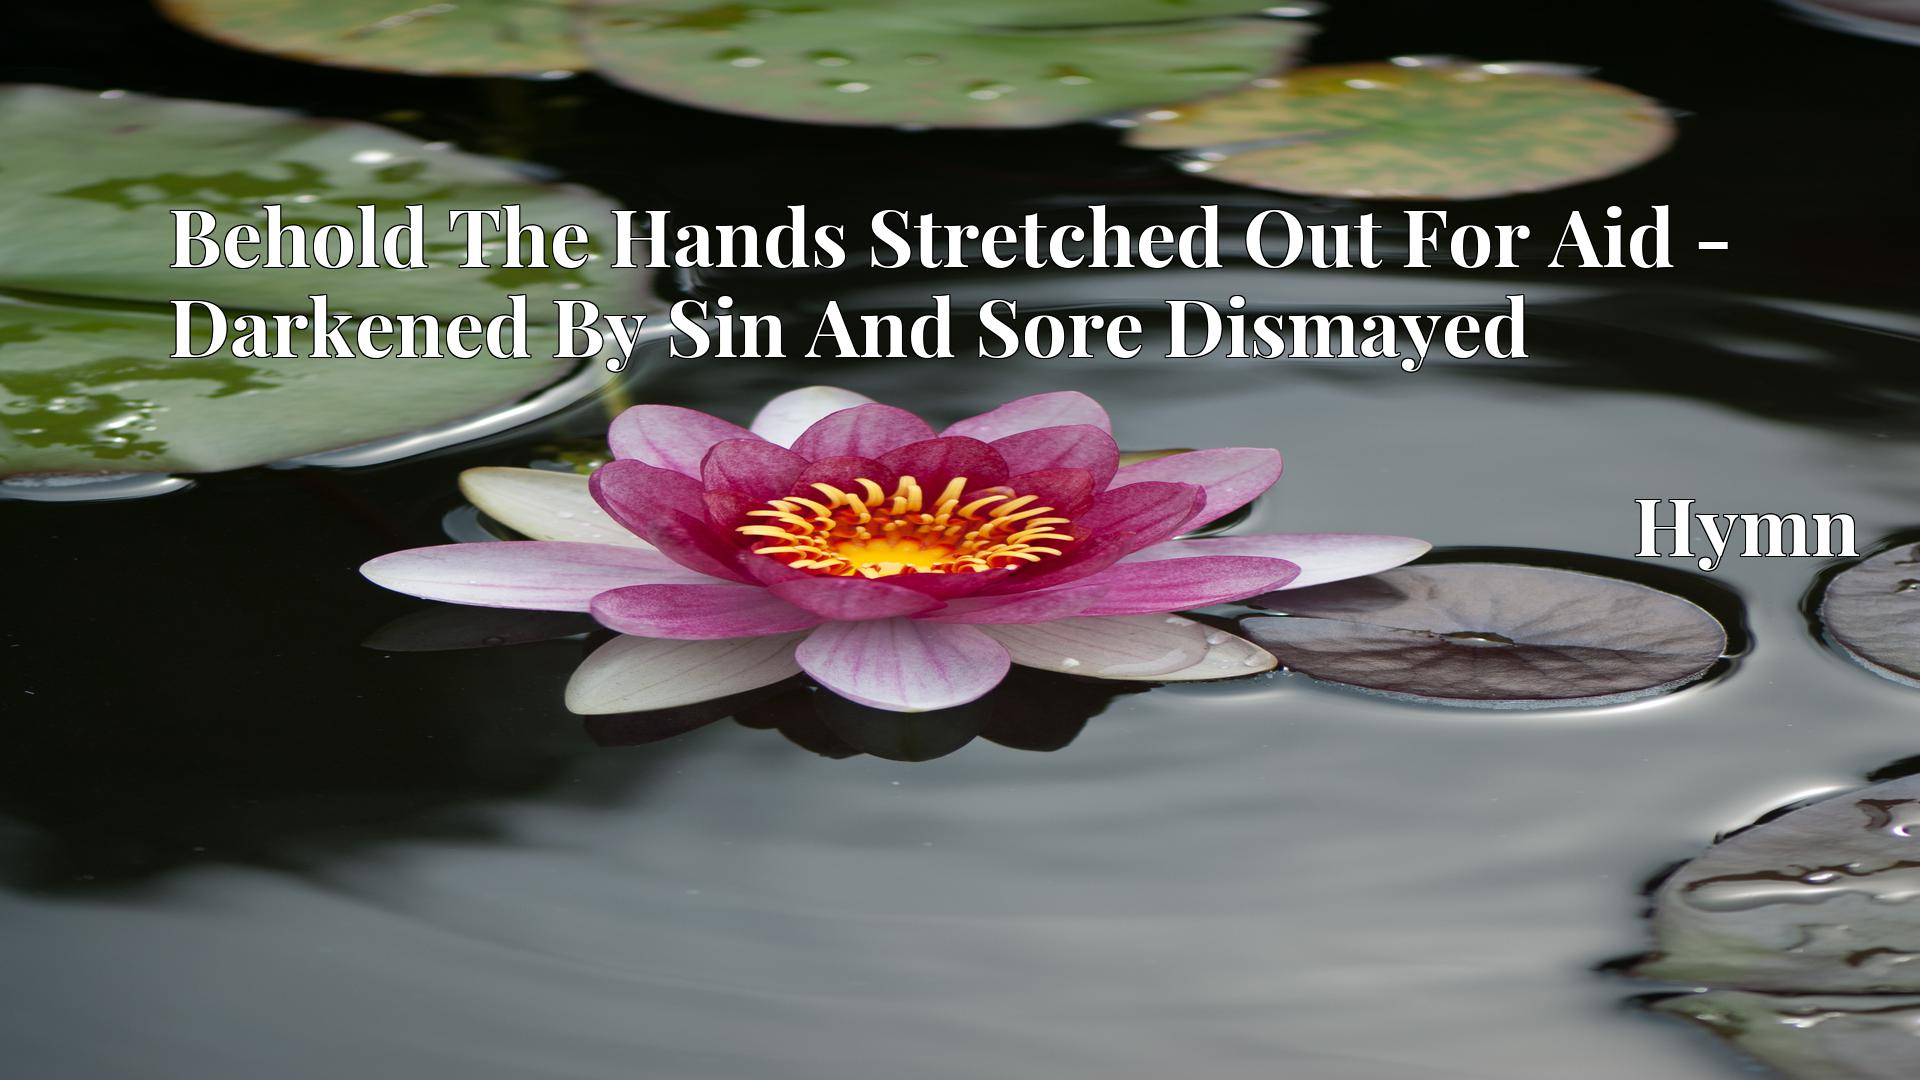 Behold The Hands Stretched Out For Aid - Darkened By Sin And Sore Dismayed Hymn